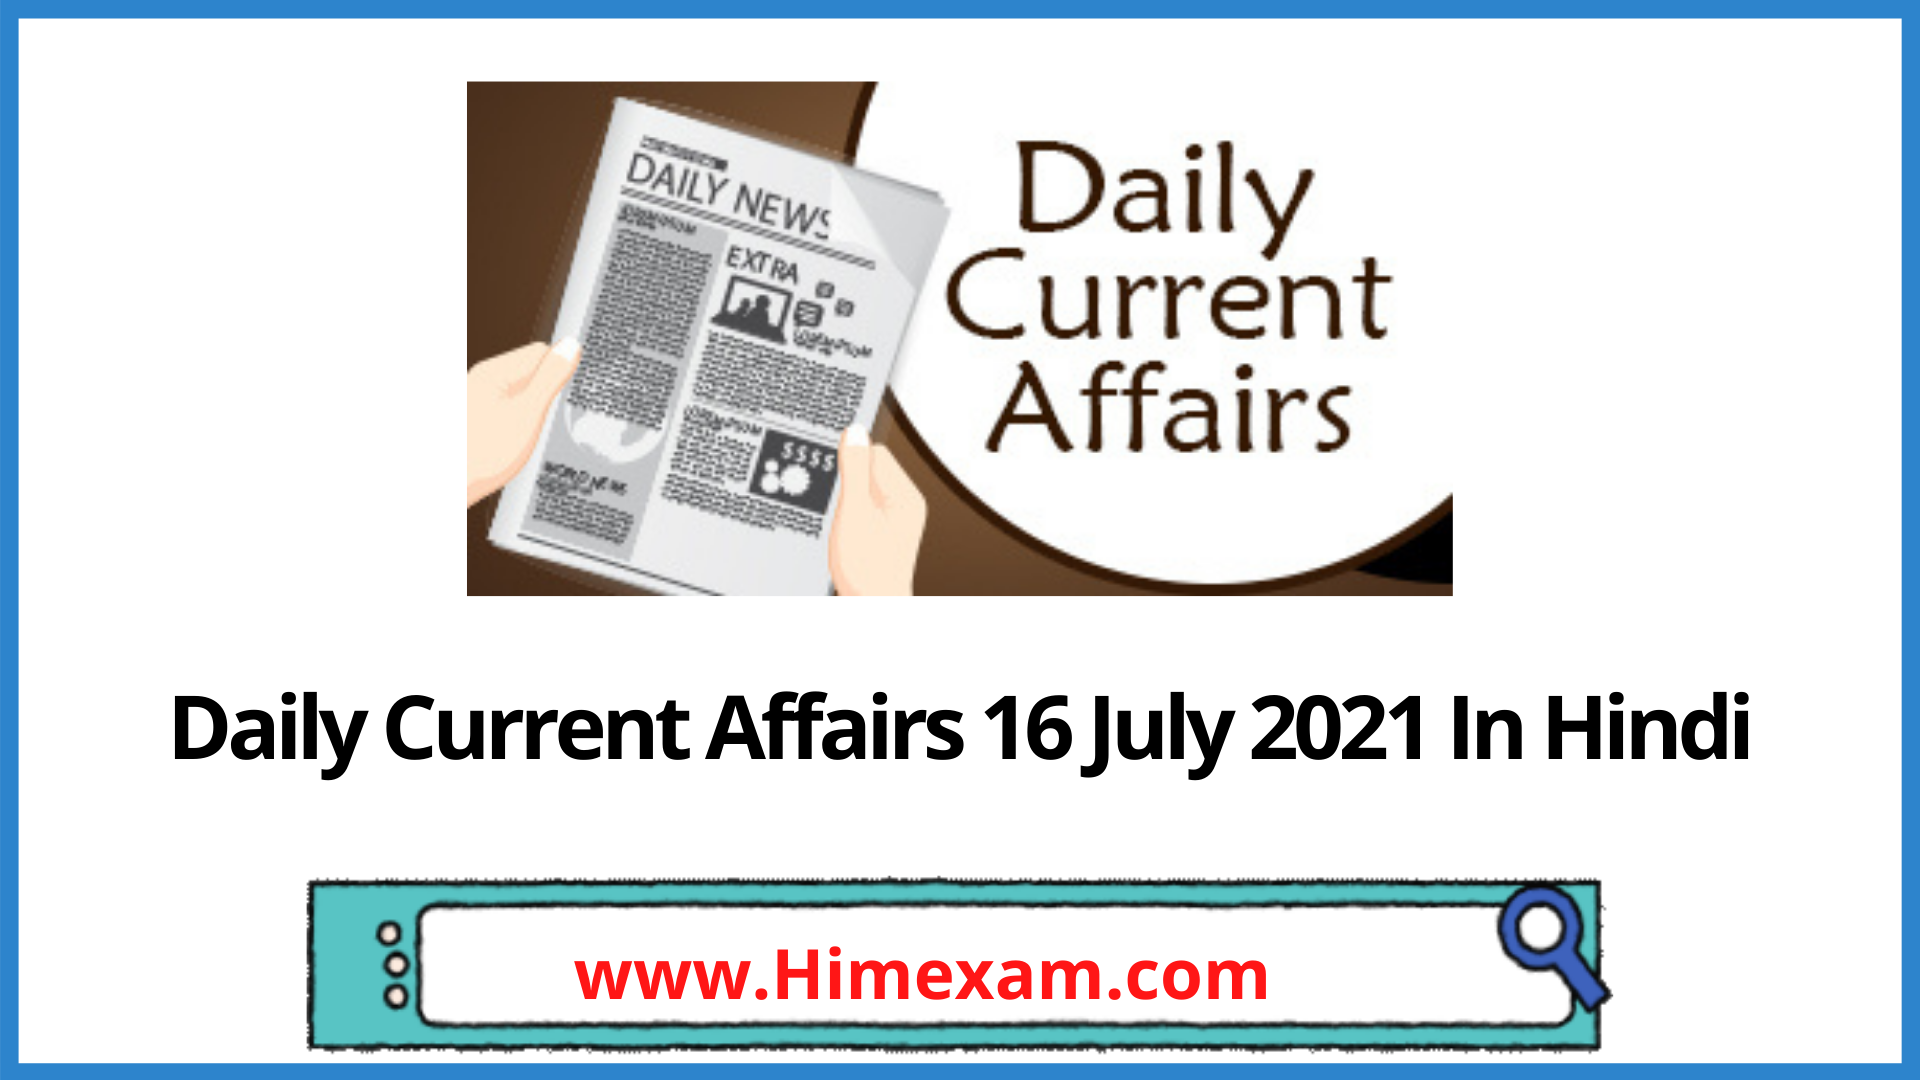 Daily Current Affairs 16 July 2021 In Hindi